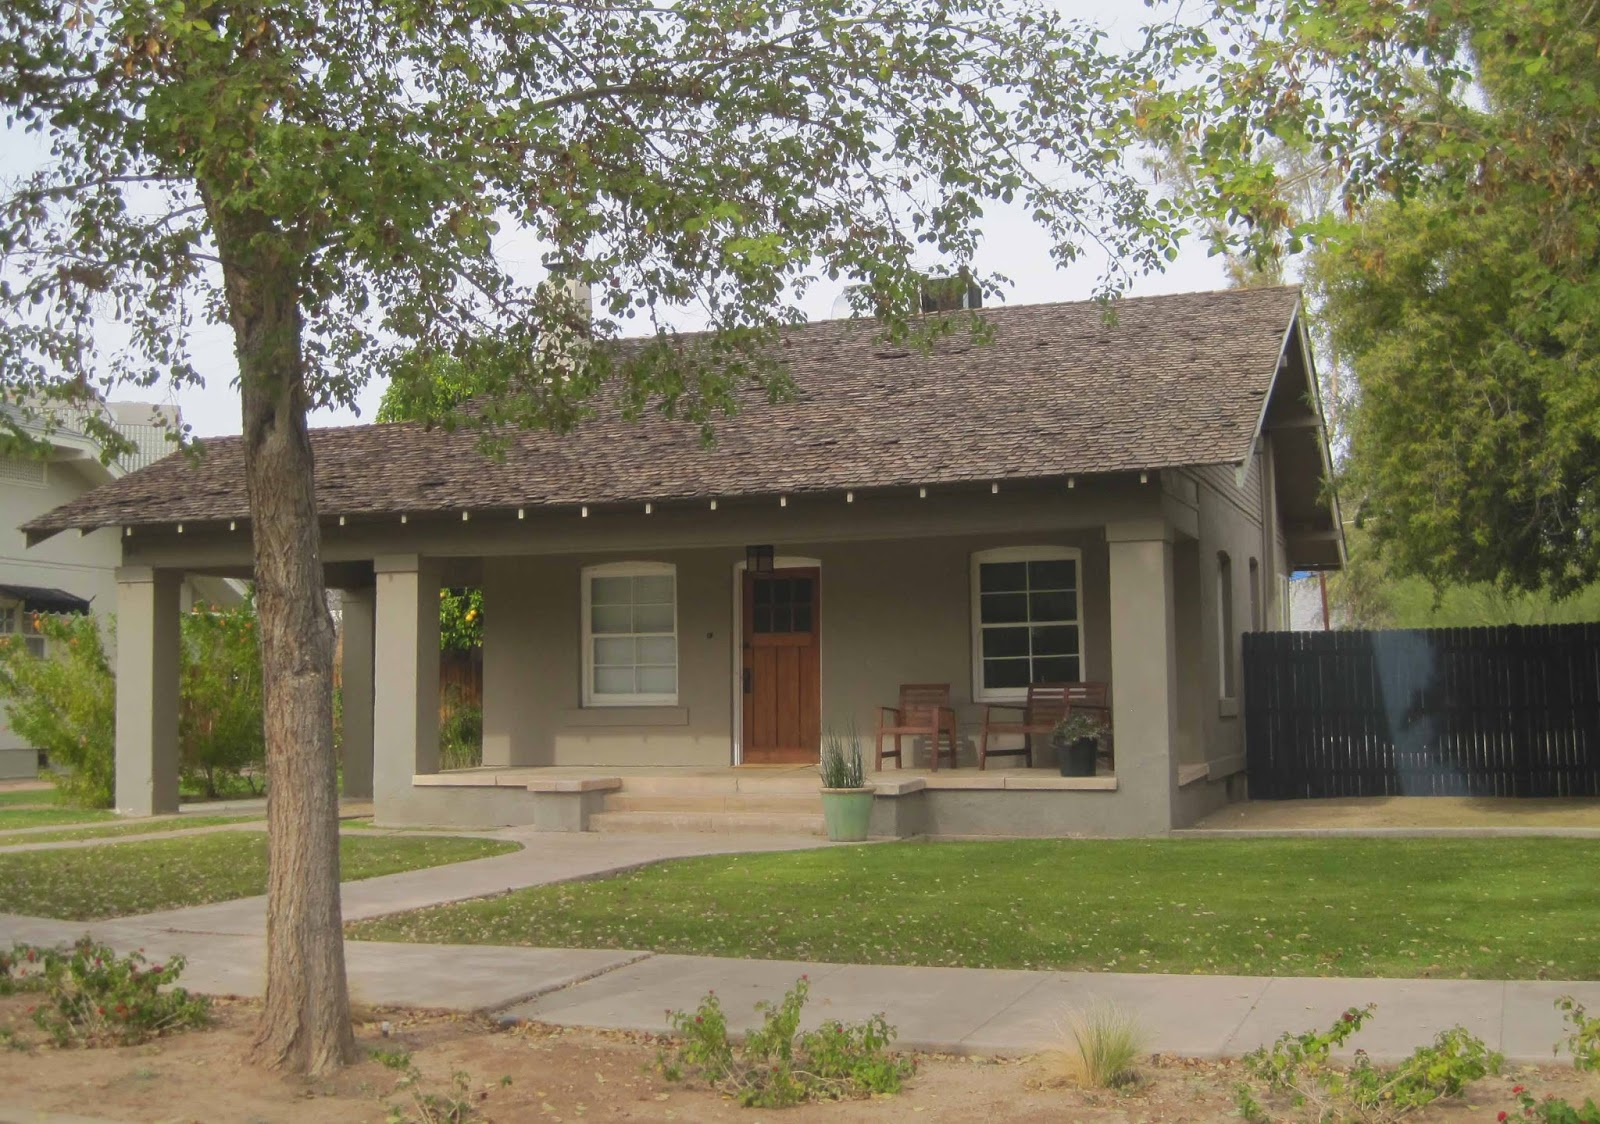 The historic small houses of phoenix arizona harrison for Small house design native